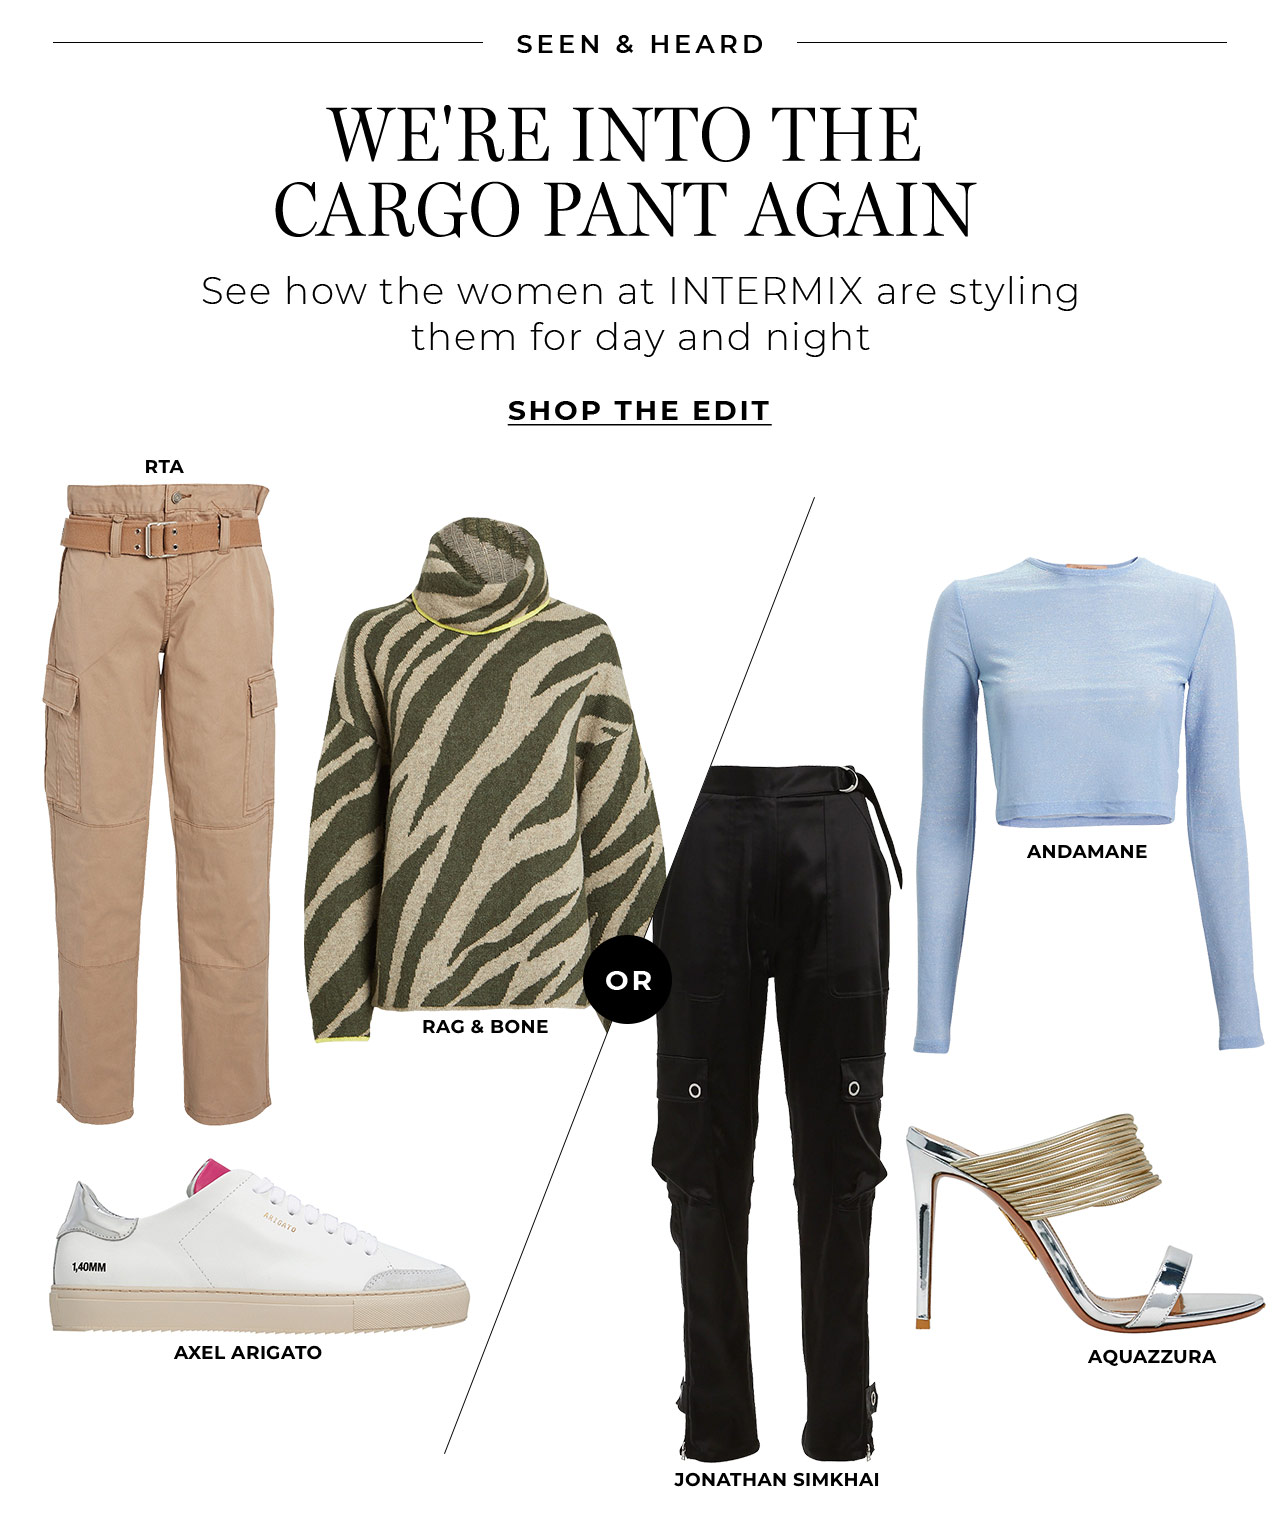 We're into the cargo pant again